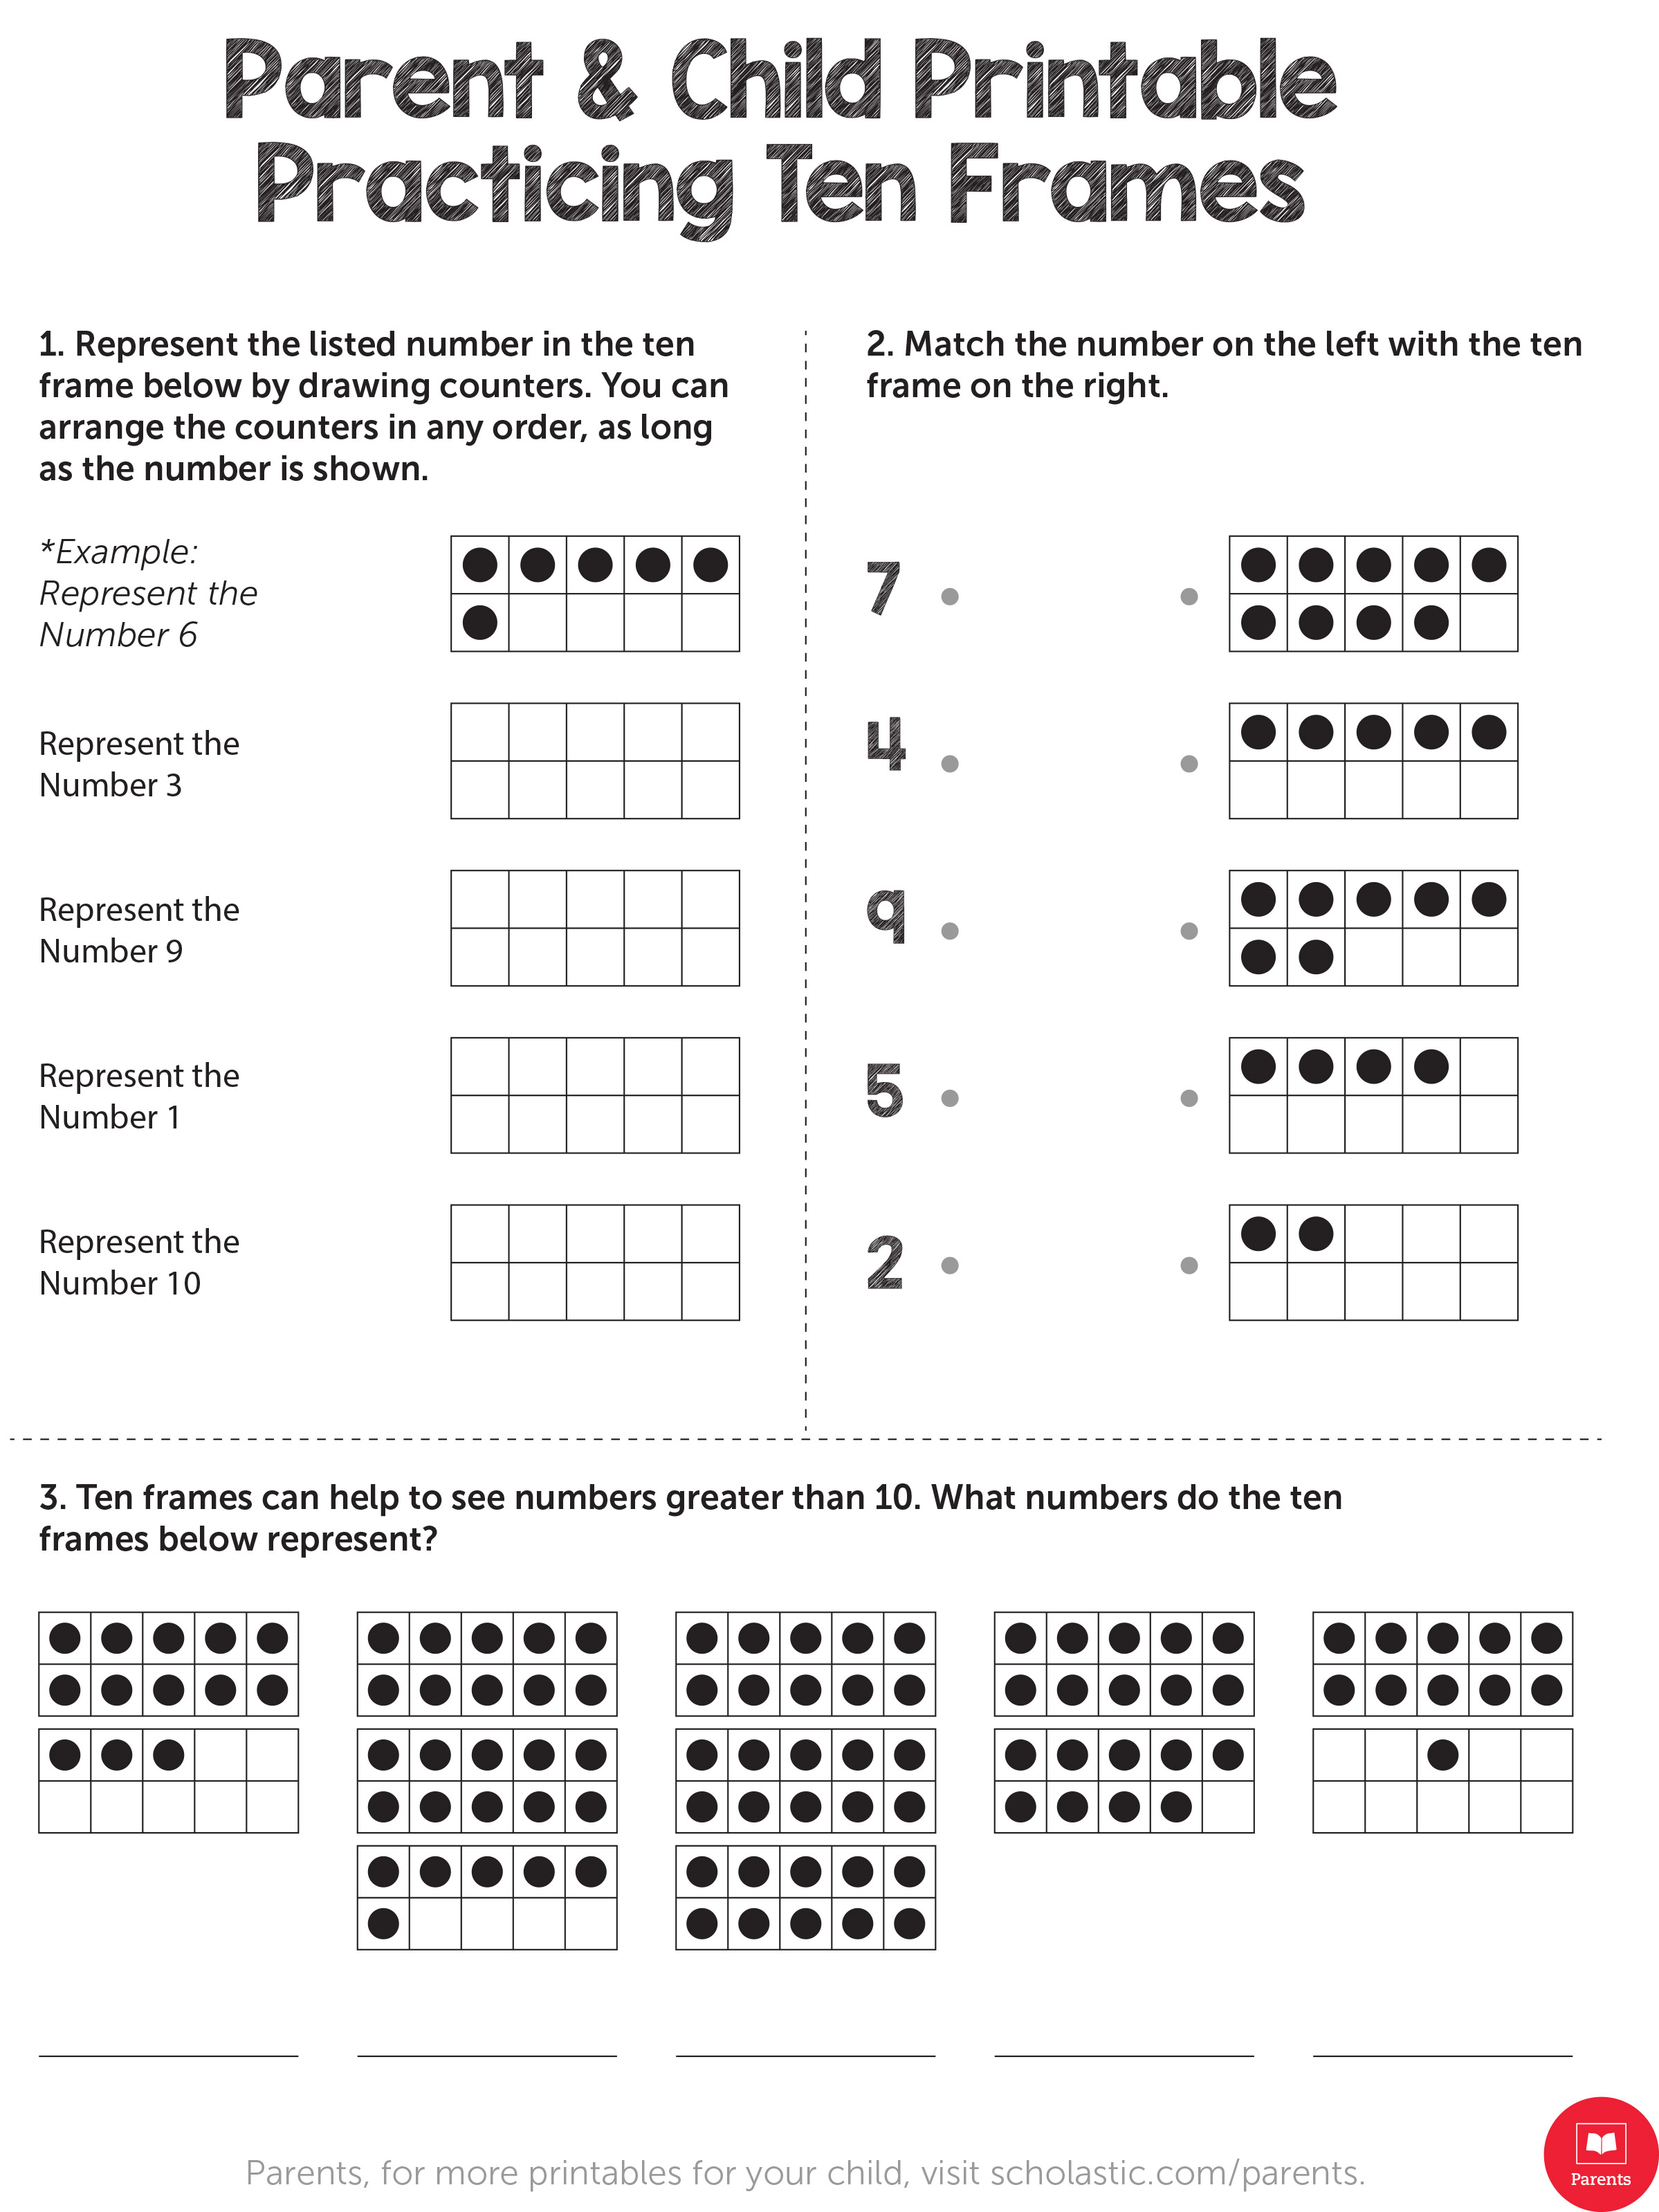 Practicing Ten Frames | Worksheets & Printables | Scholastic | Parents | Ten Frame Printable Worksheets